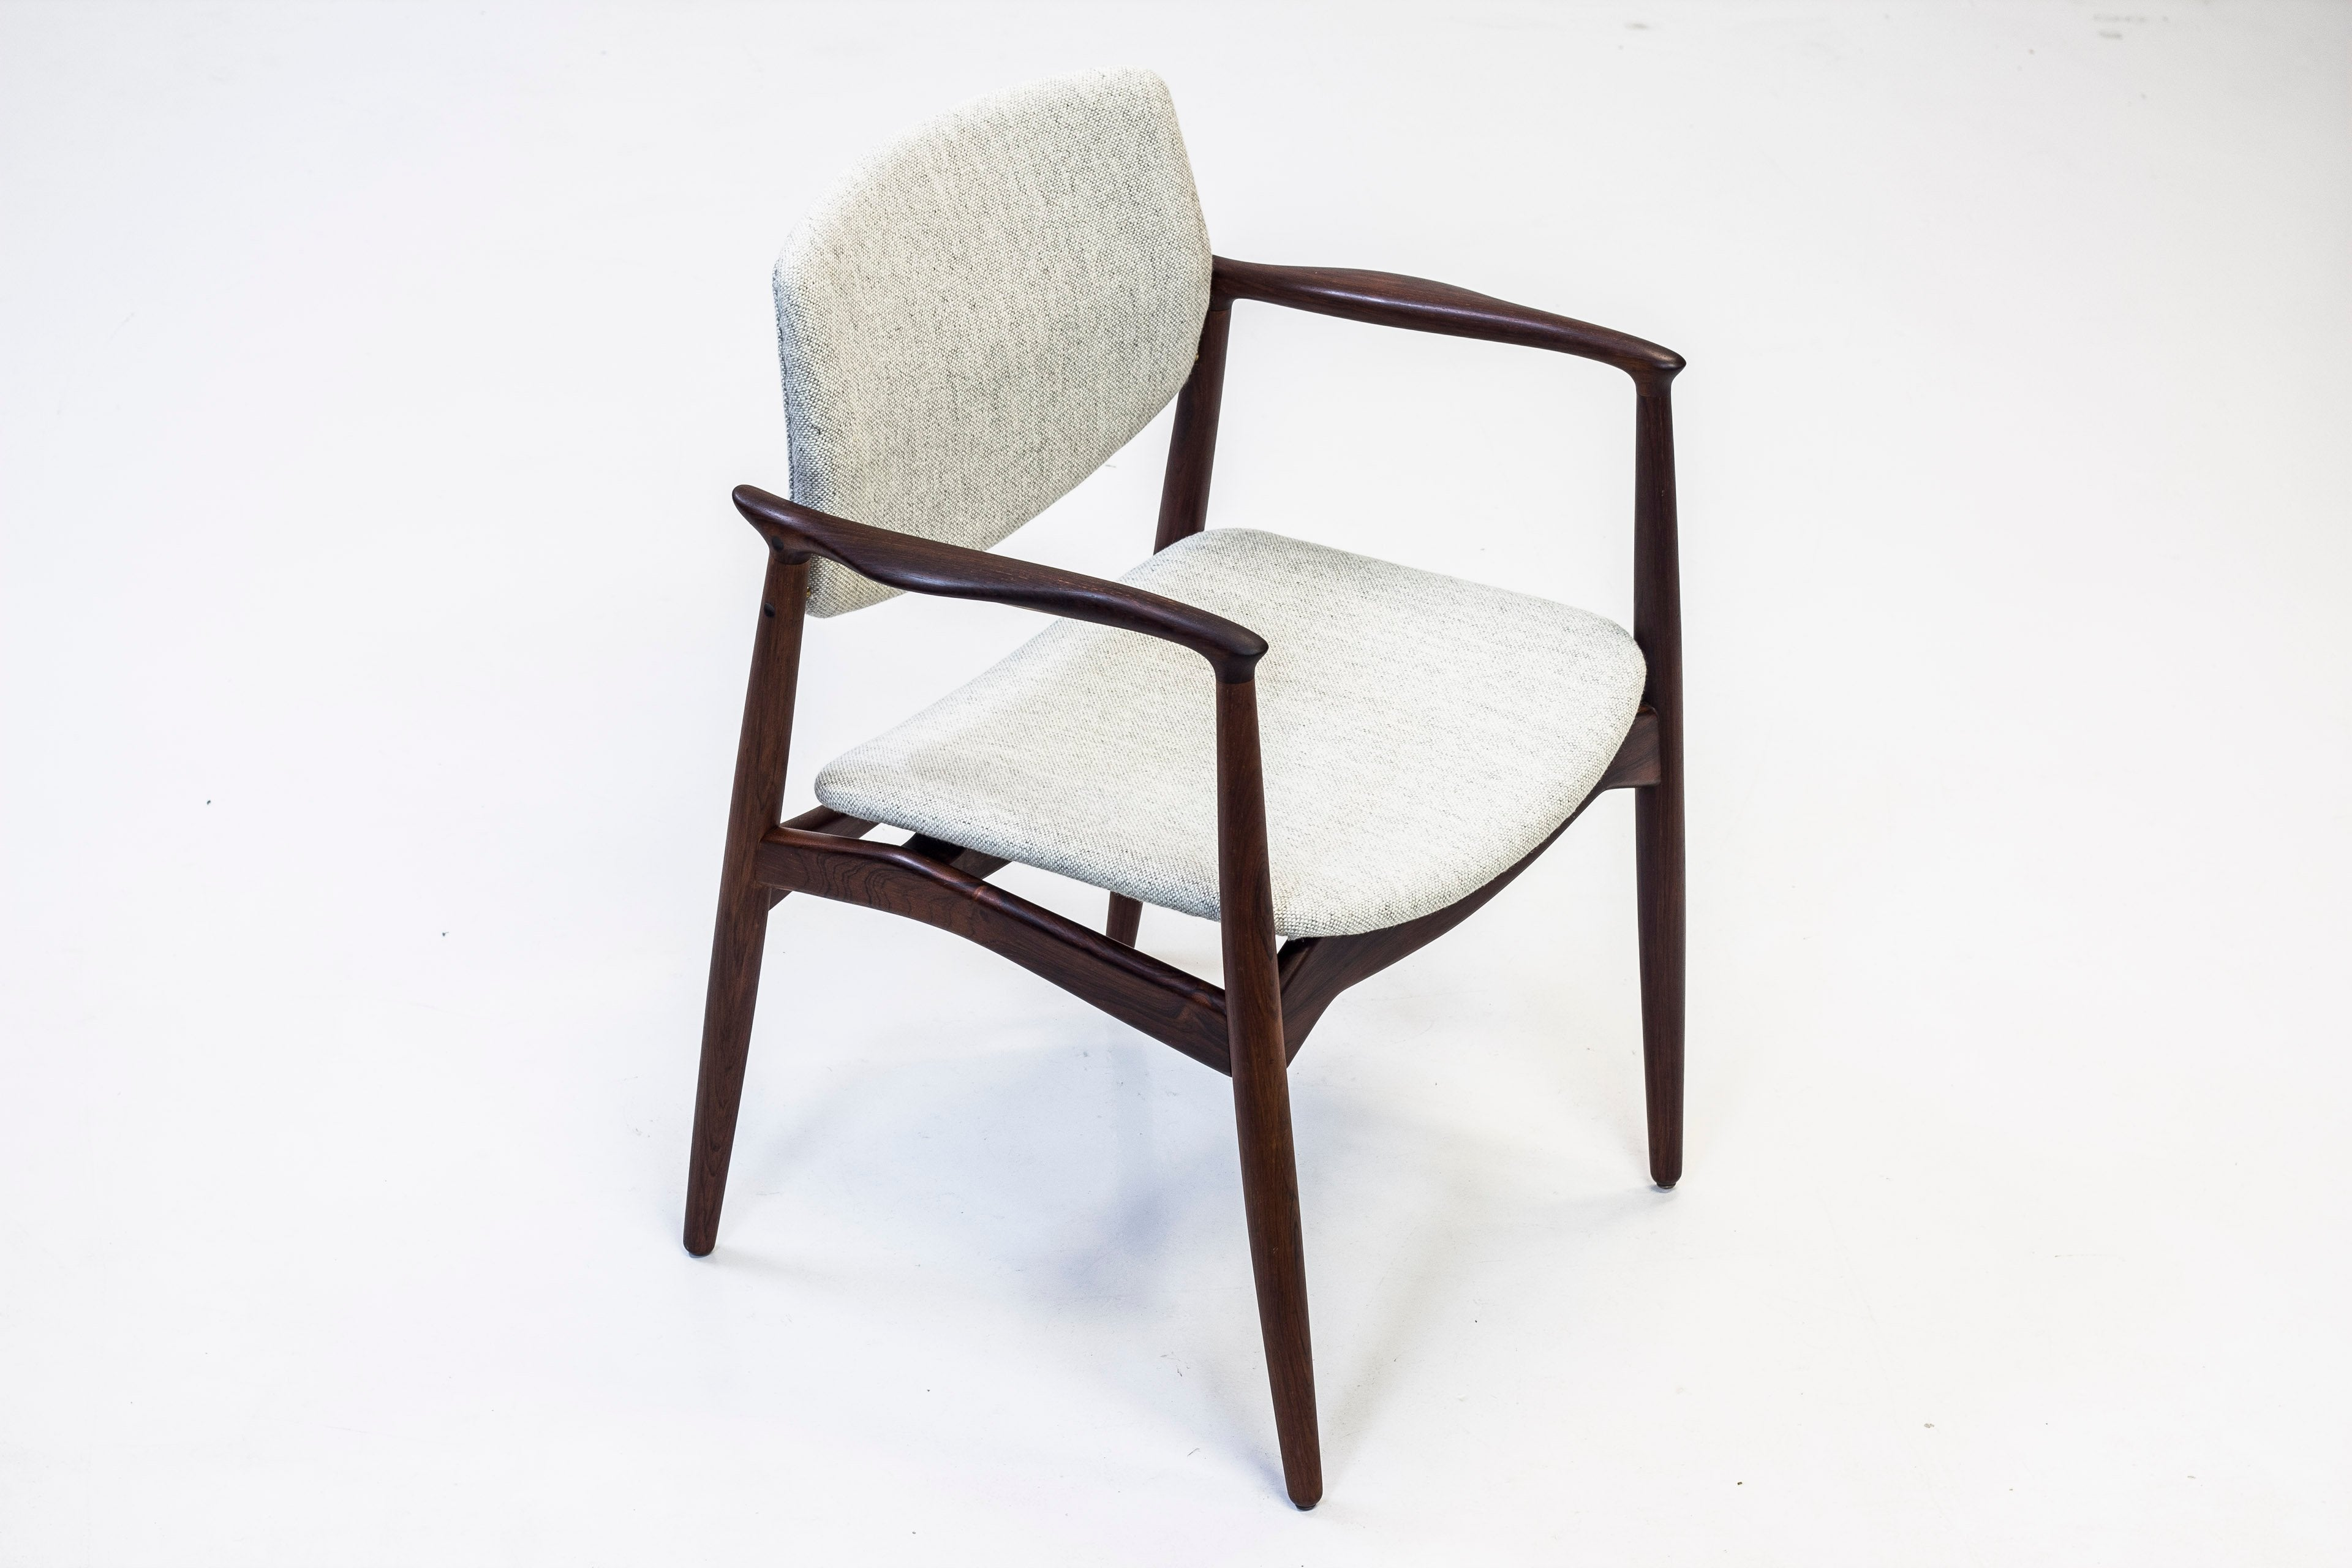 1950s Palisander Arm chair by Erik Buch